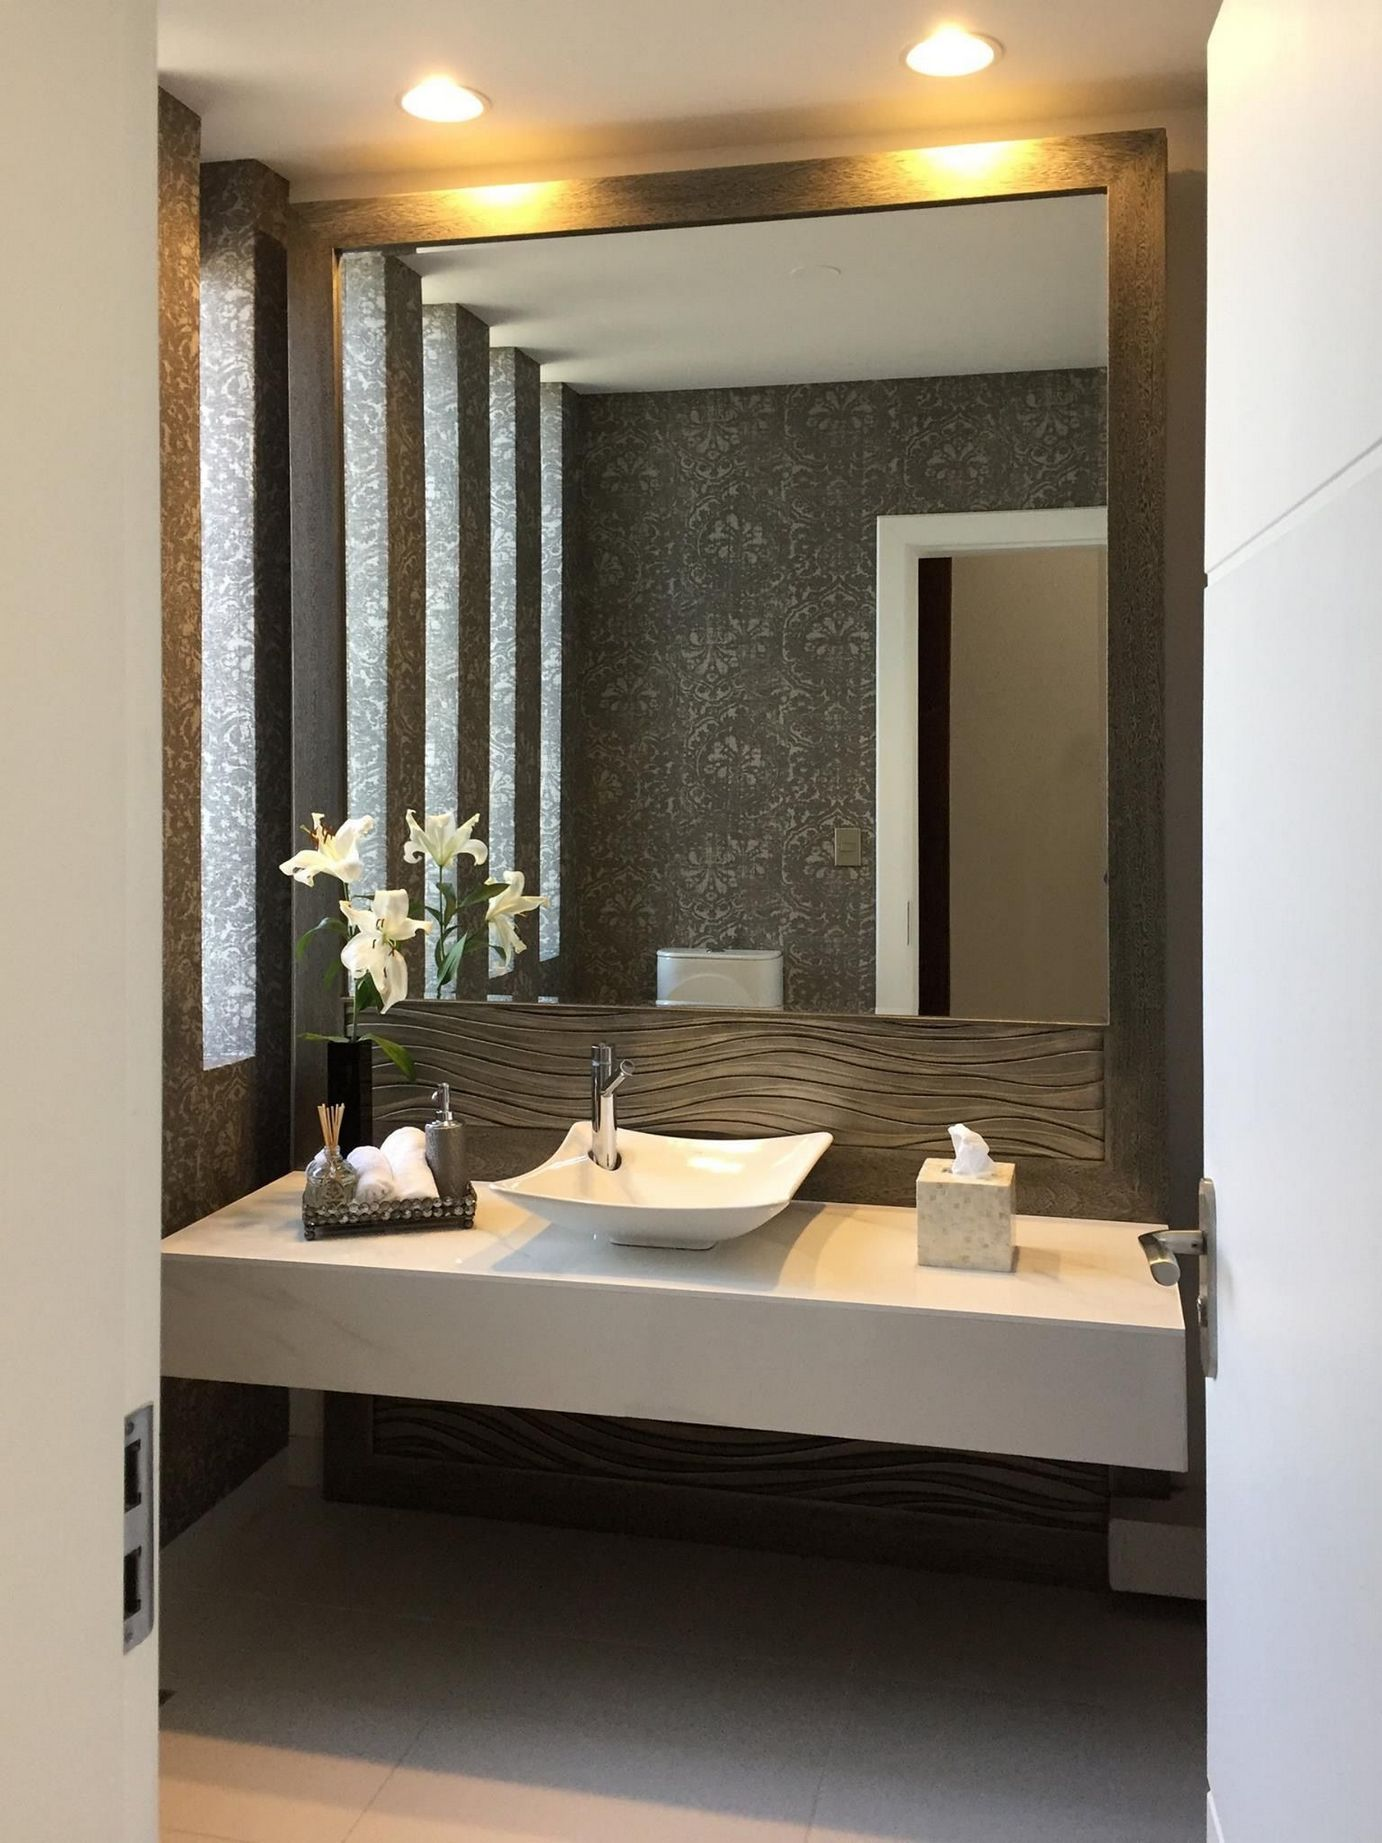 35 the do s and don ts of bathroom remodel layout in 2020 on bathroom renovation ideas 2020 id=78011